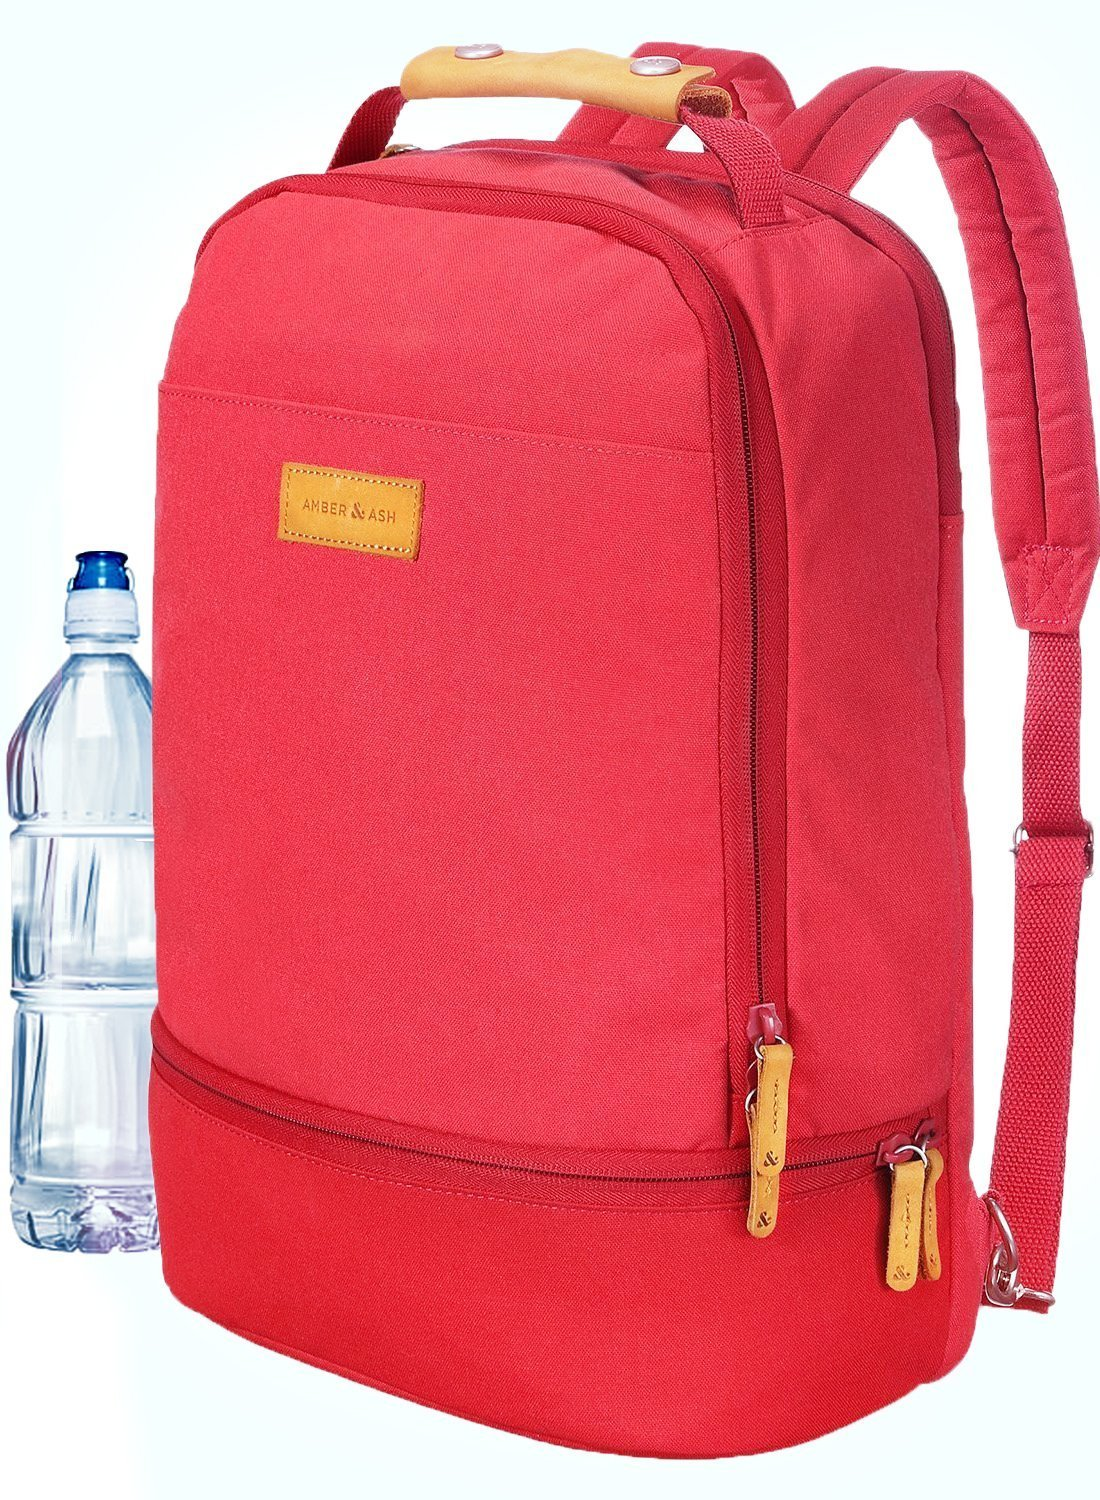 AMBER & ASH Lightweight Laptop School Backpack 15.6 Inch Computer Tablet Fits iPad Pro Water Resistant Travel Bag Large Bottom Compartment Many Pockets Comfortable Straps Genunine Leather Handle, Red